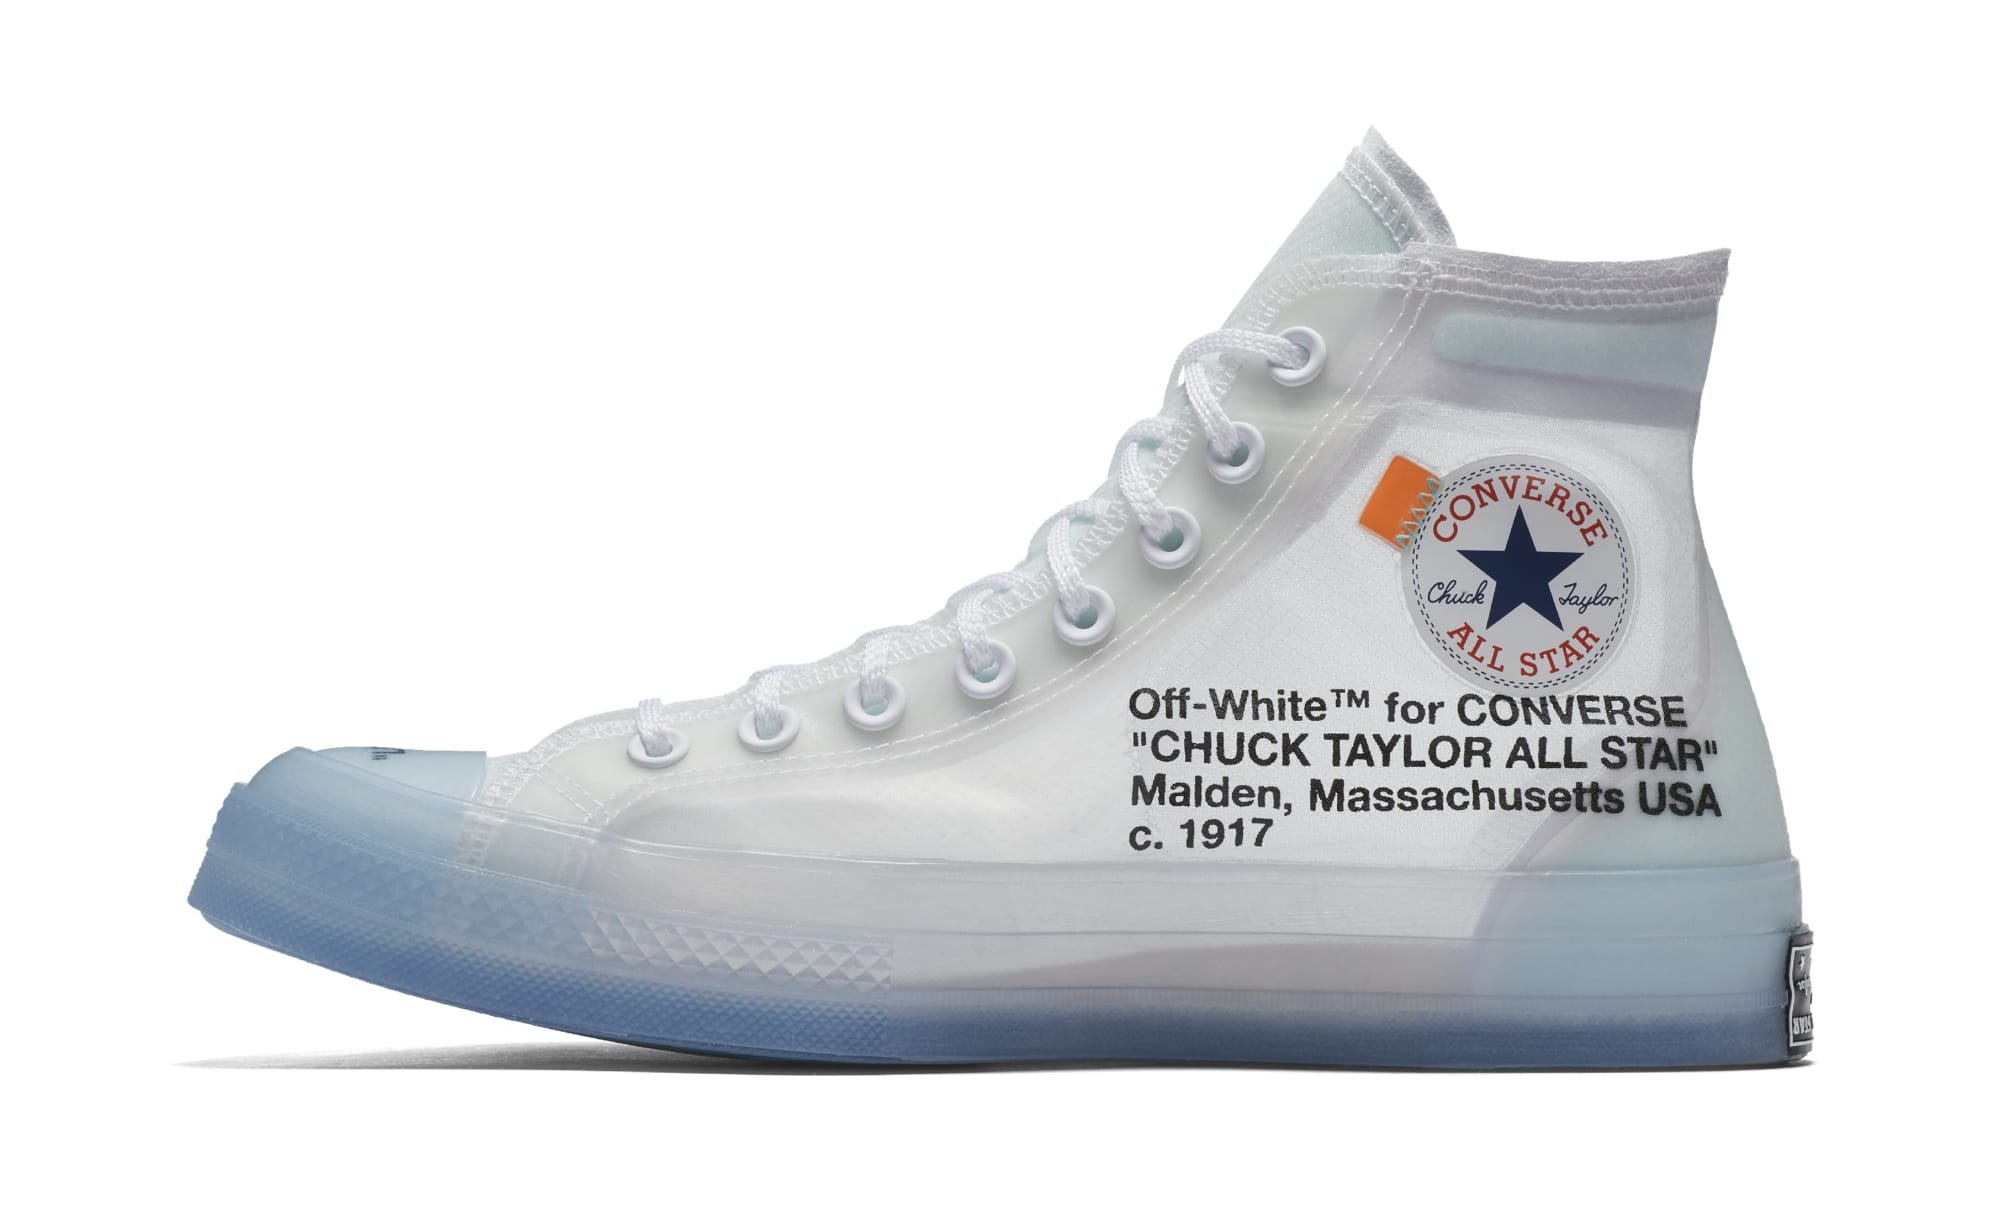 Off White x Converse Chuck Taylor All Starc162204C 102